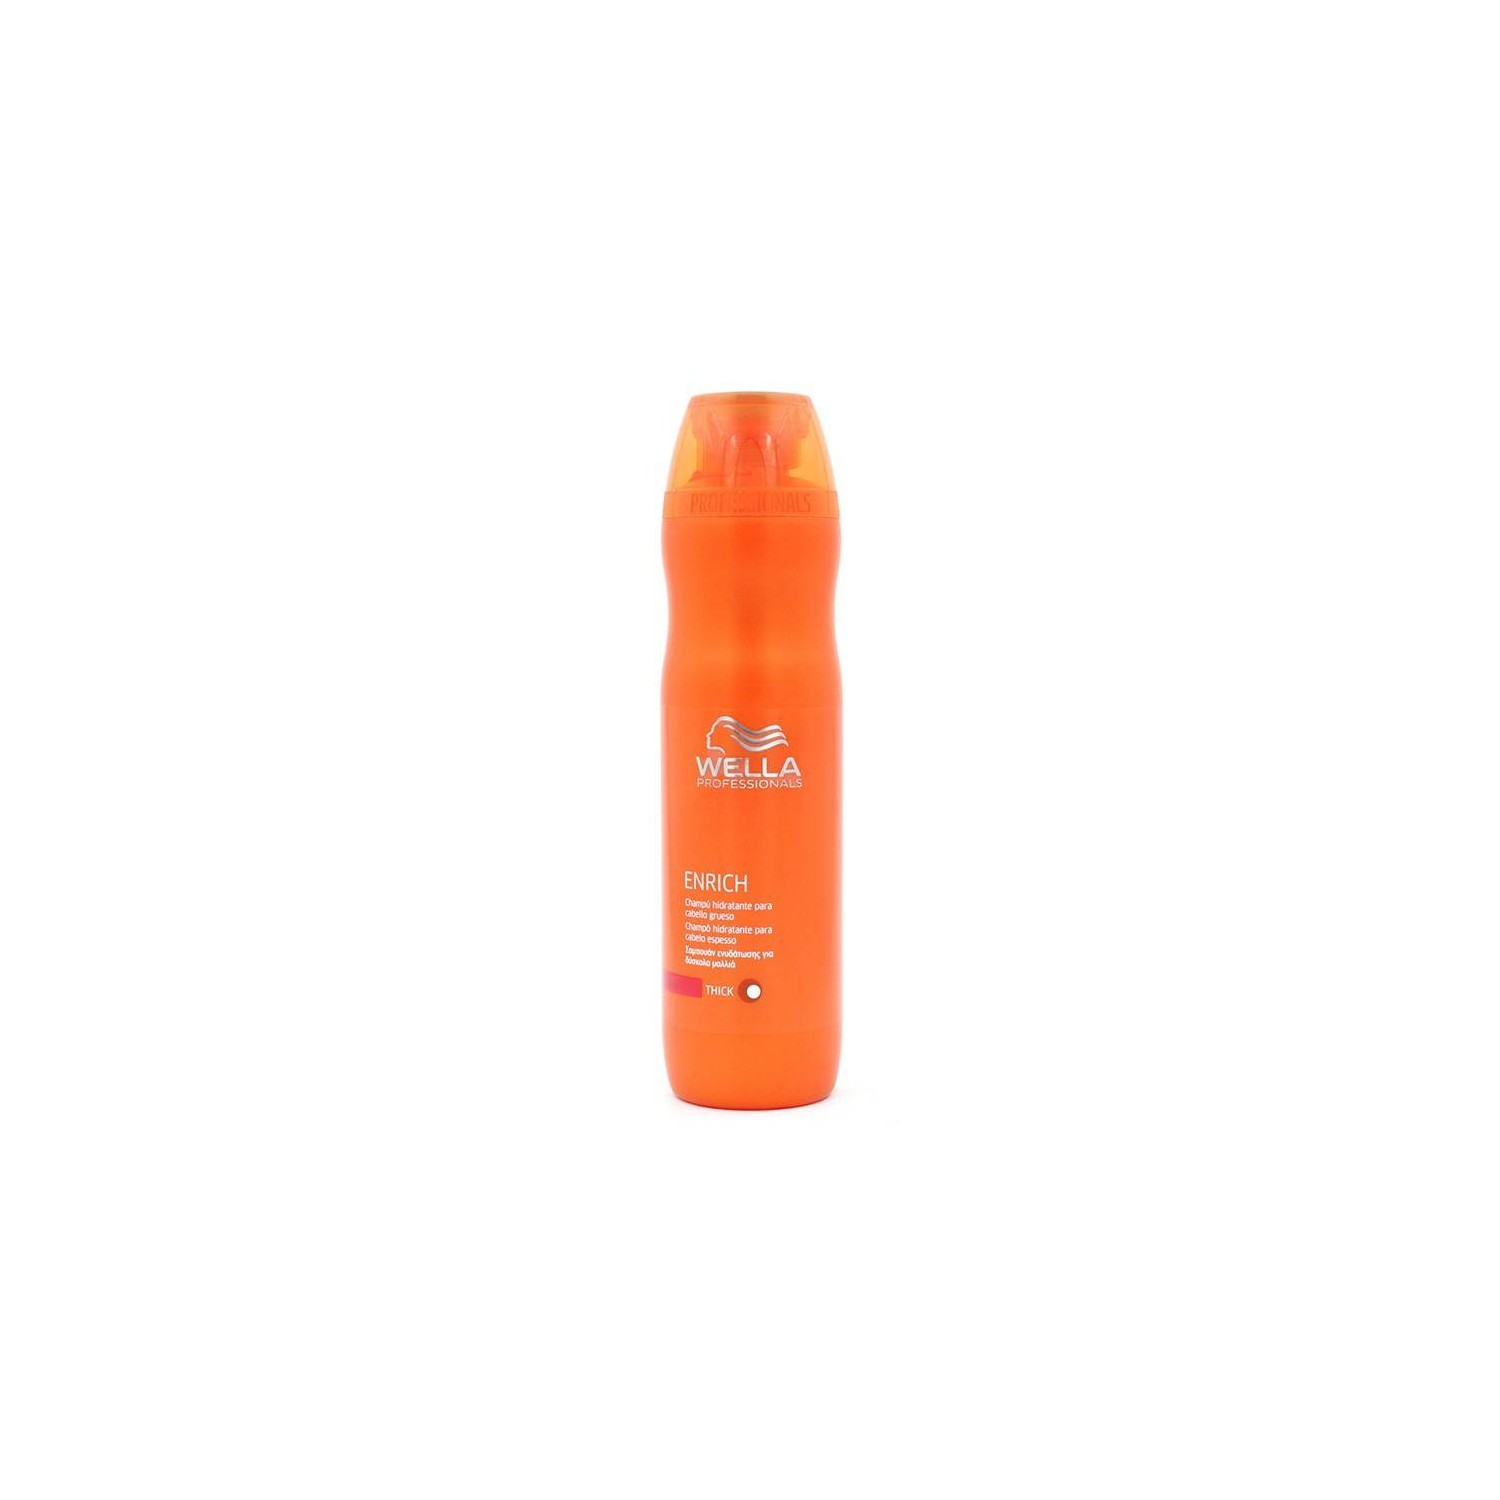 WELLA ENRICH SHAMPOO SHAMPOO THICK HAIR 250 ml